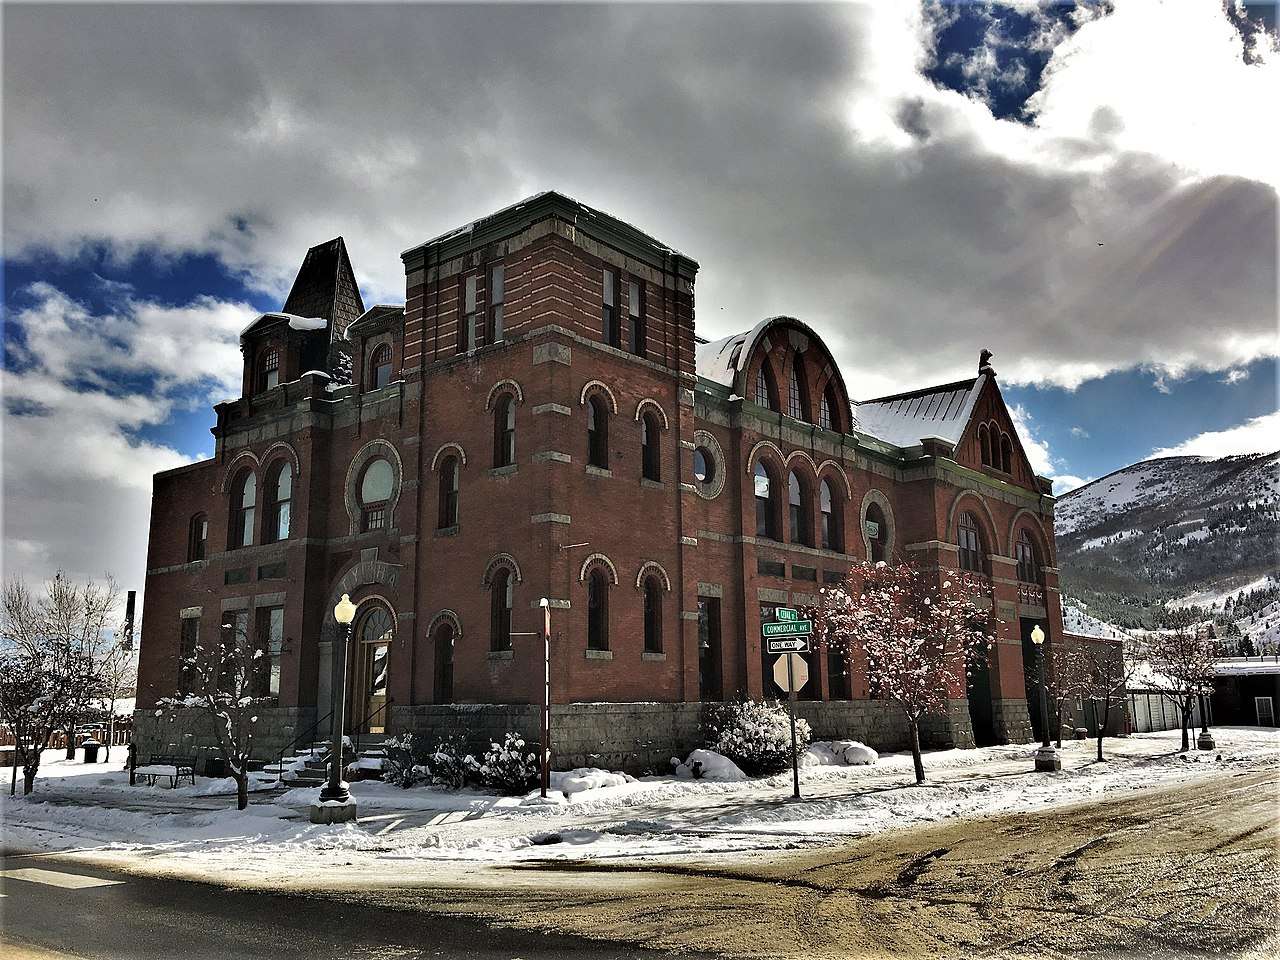 The old City Hall building was erected in 1896 and is the current home of the Copper Village Museum & Art Center.